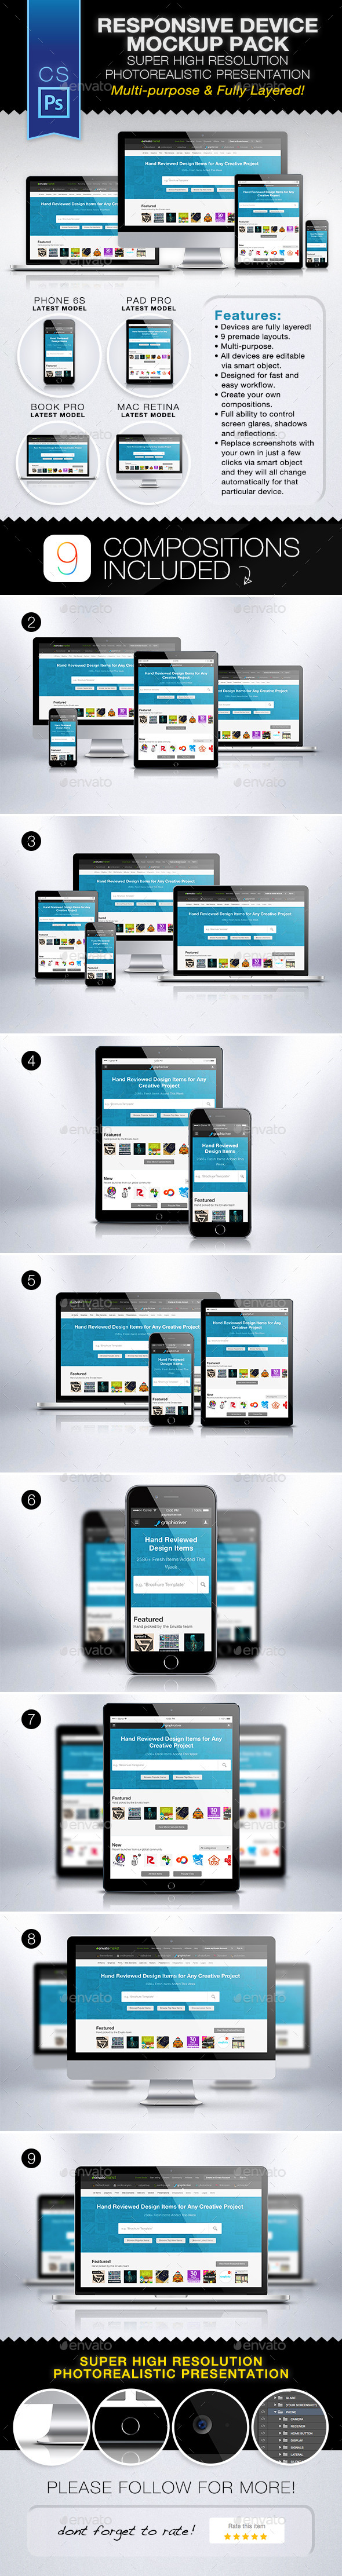 Responsive Device Mockup Pack - Multiple Displays